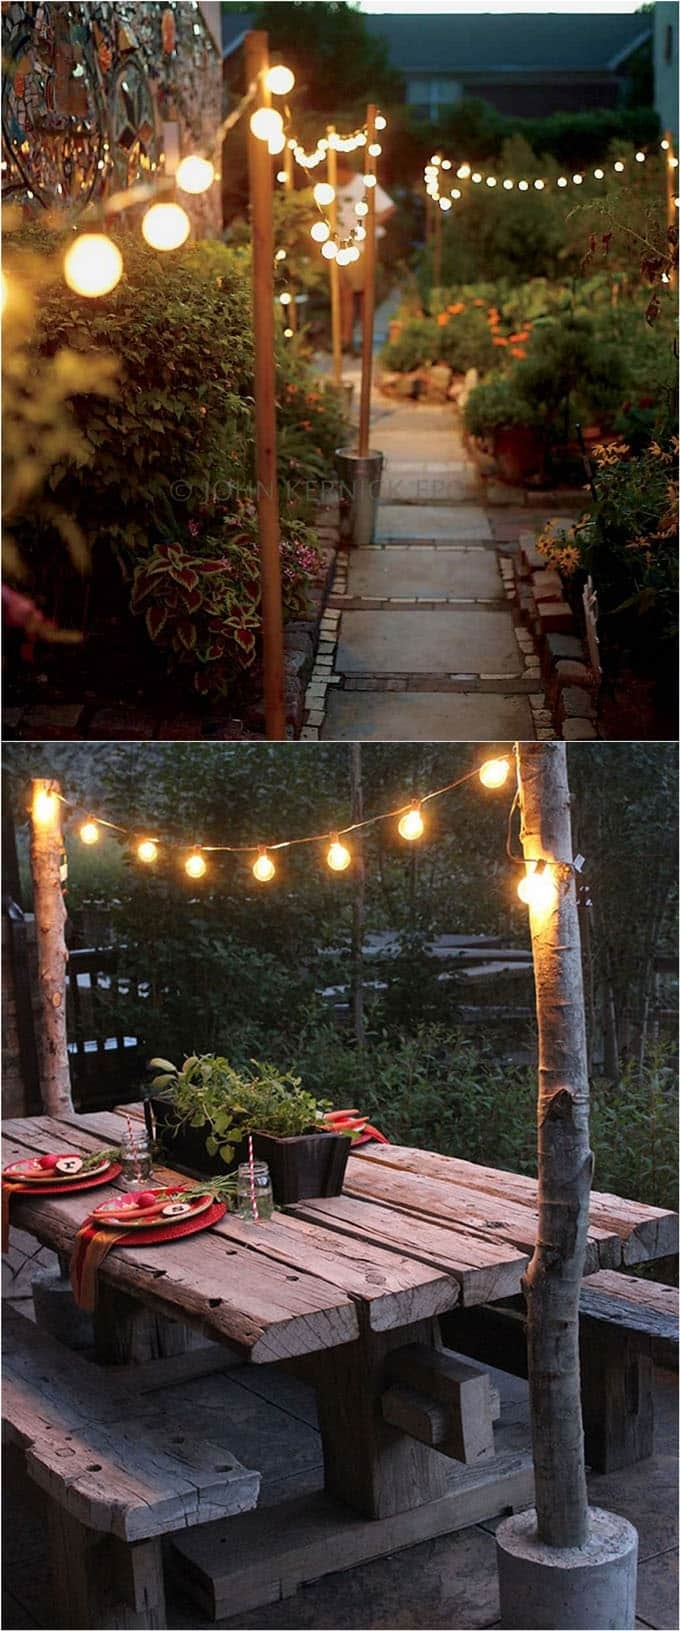 28 Stunning Diy Outdoor Lighting Ideas ( & So Easy! ) - A Piece Of regarding Outdoor Yard Lanterns (Image 2 of 20)